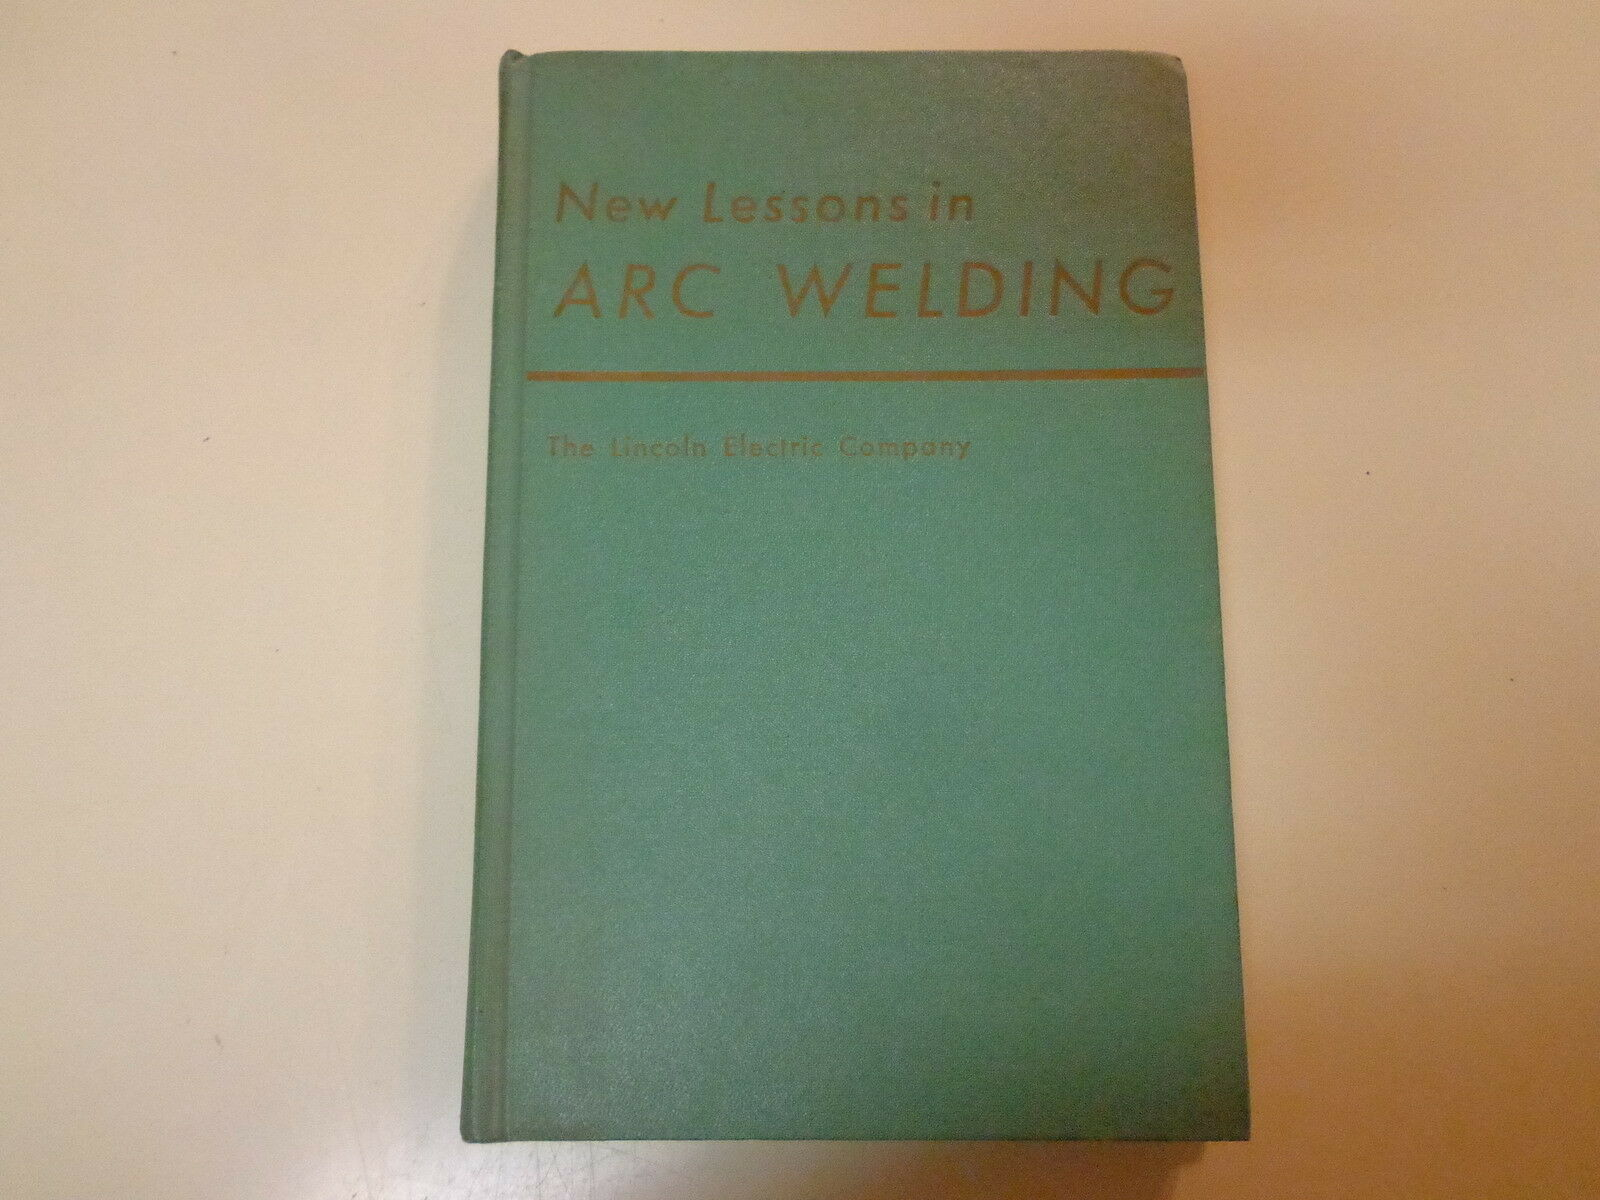 New Lessons In Arc Welding 1962 Lincoln Electric Company Training Ac225s Welder Wiring Diagrams 1 Of 1only Available